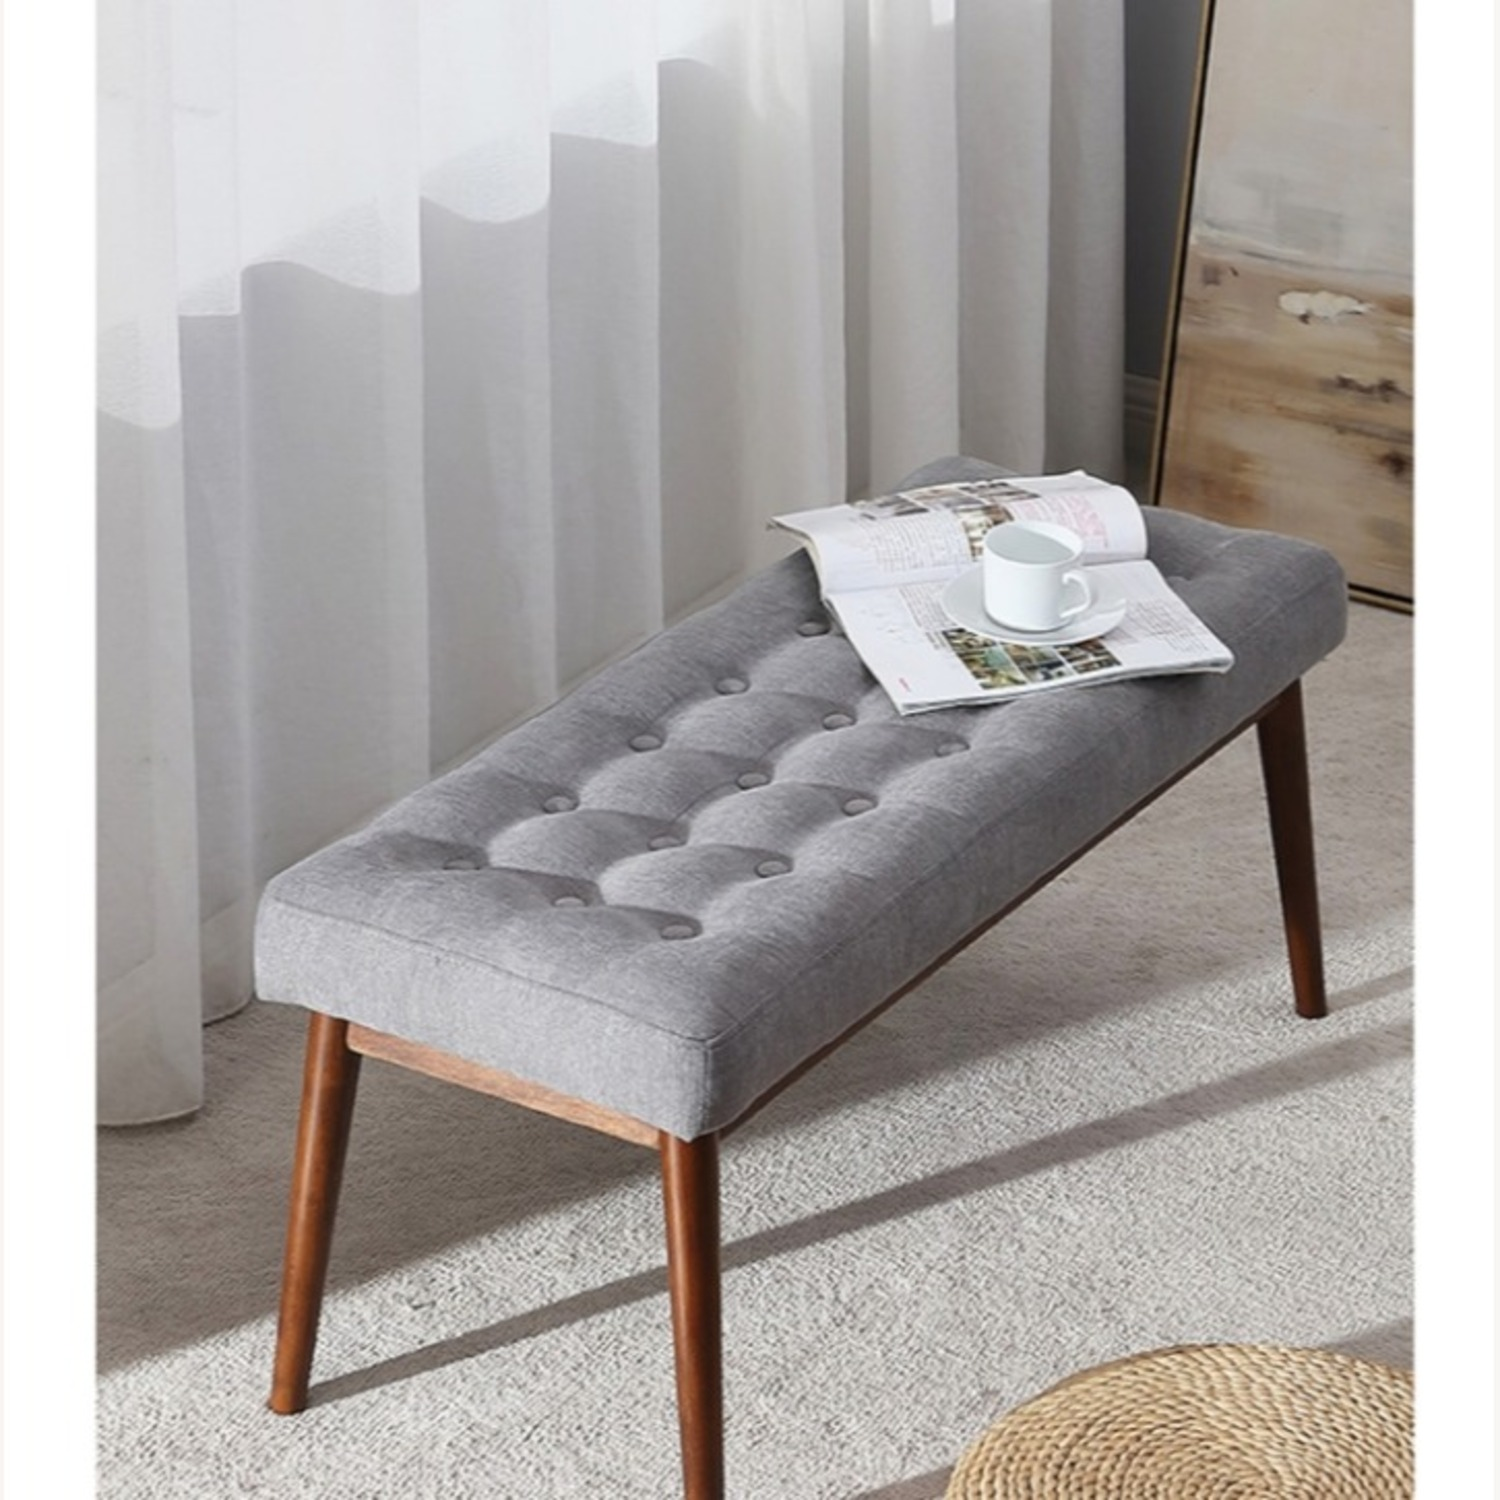 Bench In Gray Cotton Crafted W/ Beech Wood Base - image-1